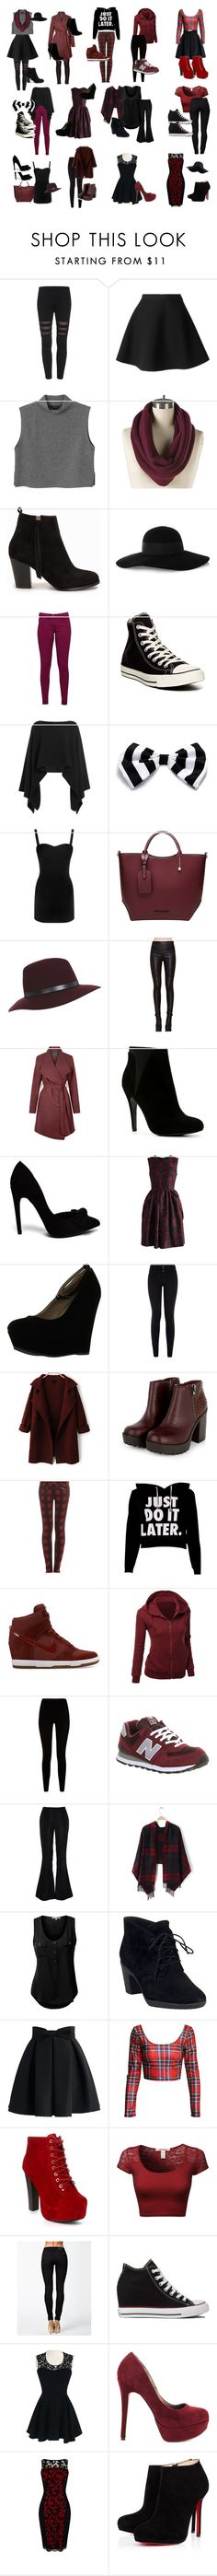 """""""My Fall Collection - Girls night out: NYC EDITION"""" by guinea-pig-3 on Polyvore featuring MSGM, Monki, Vans, Nly Shoes, Eugenia Kim, Great Plains, Converse, Donna Karan, Alexander McQueen and Miss Selfridge"""